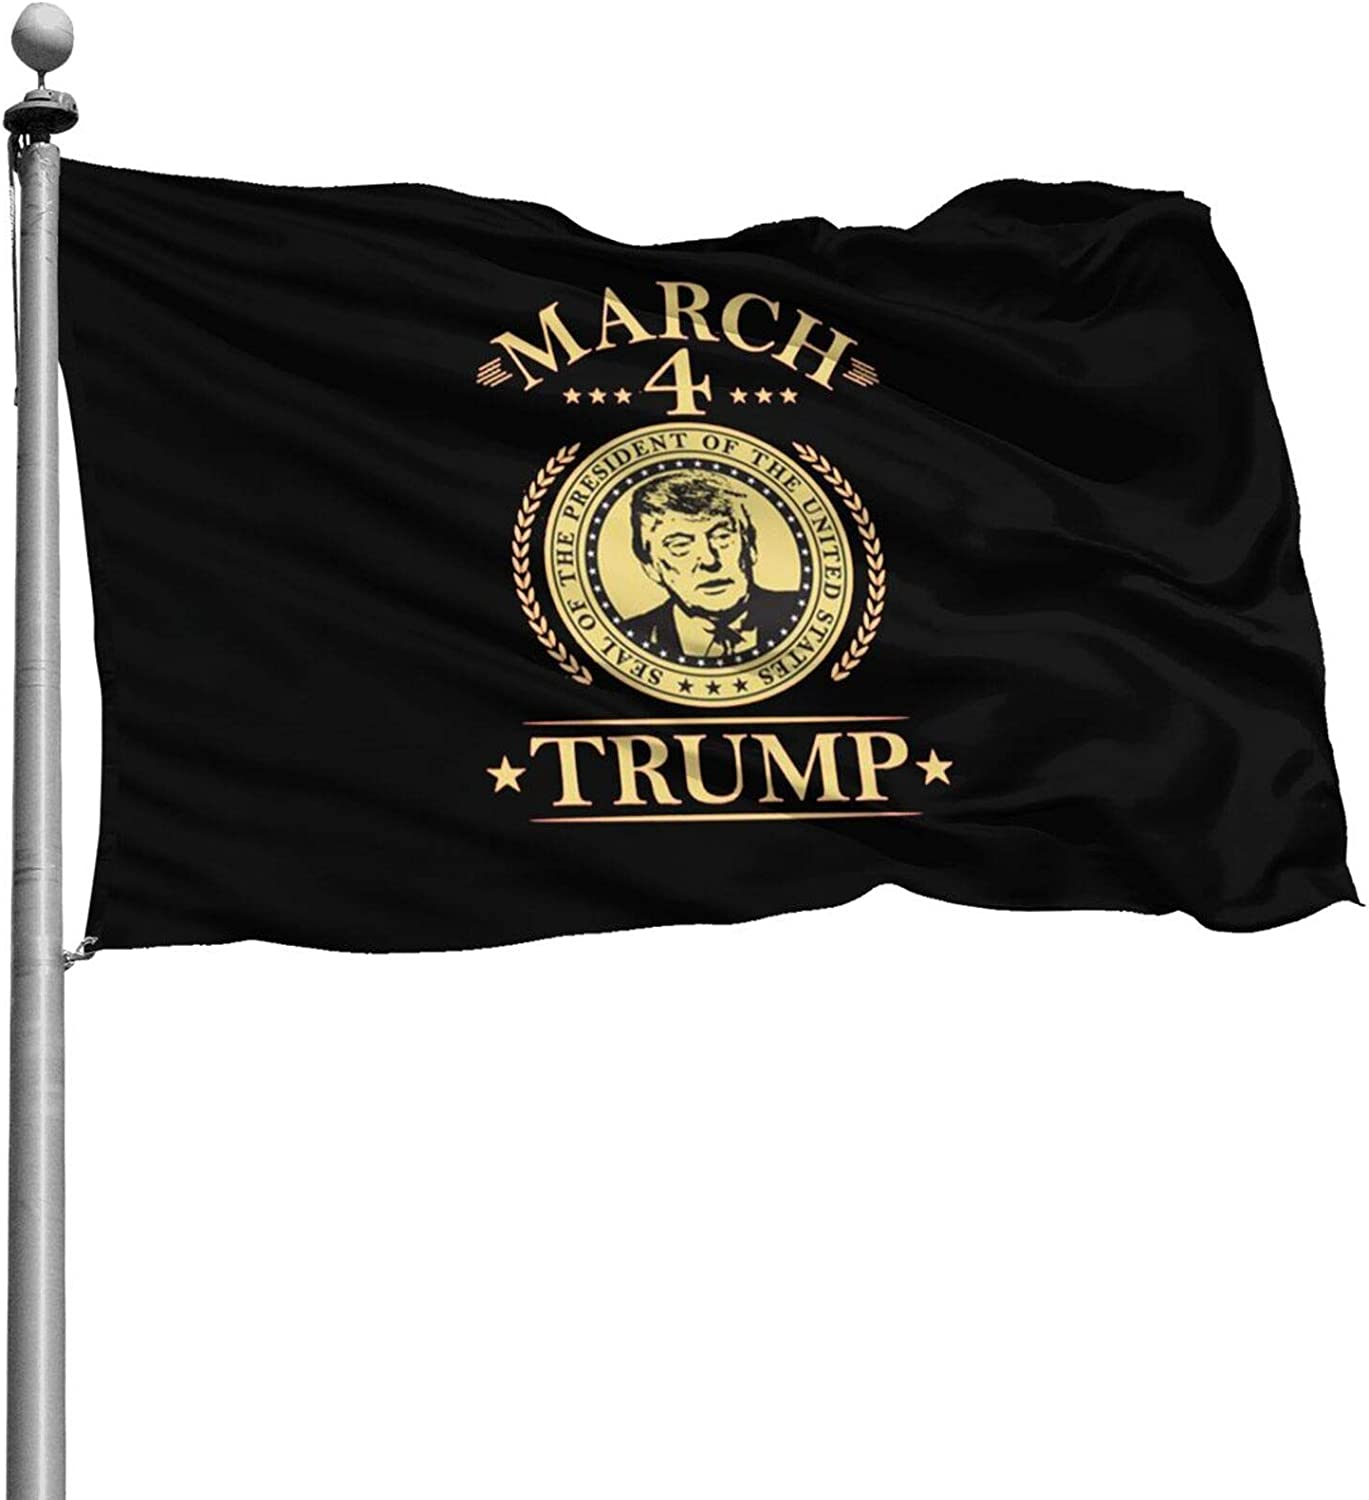 Opplsh Hdrejn March 4 Trump The Flag is 4x6 Feet, Polyester Double Stitched Outdoor and Indoor Home Decoration.